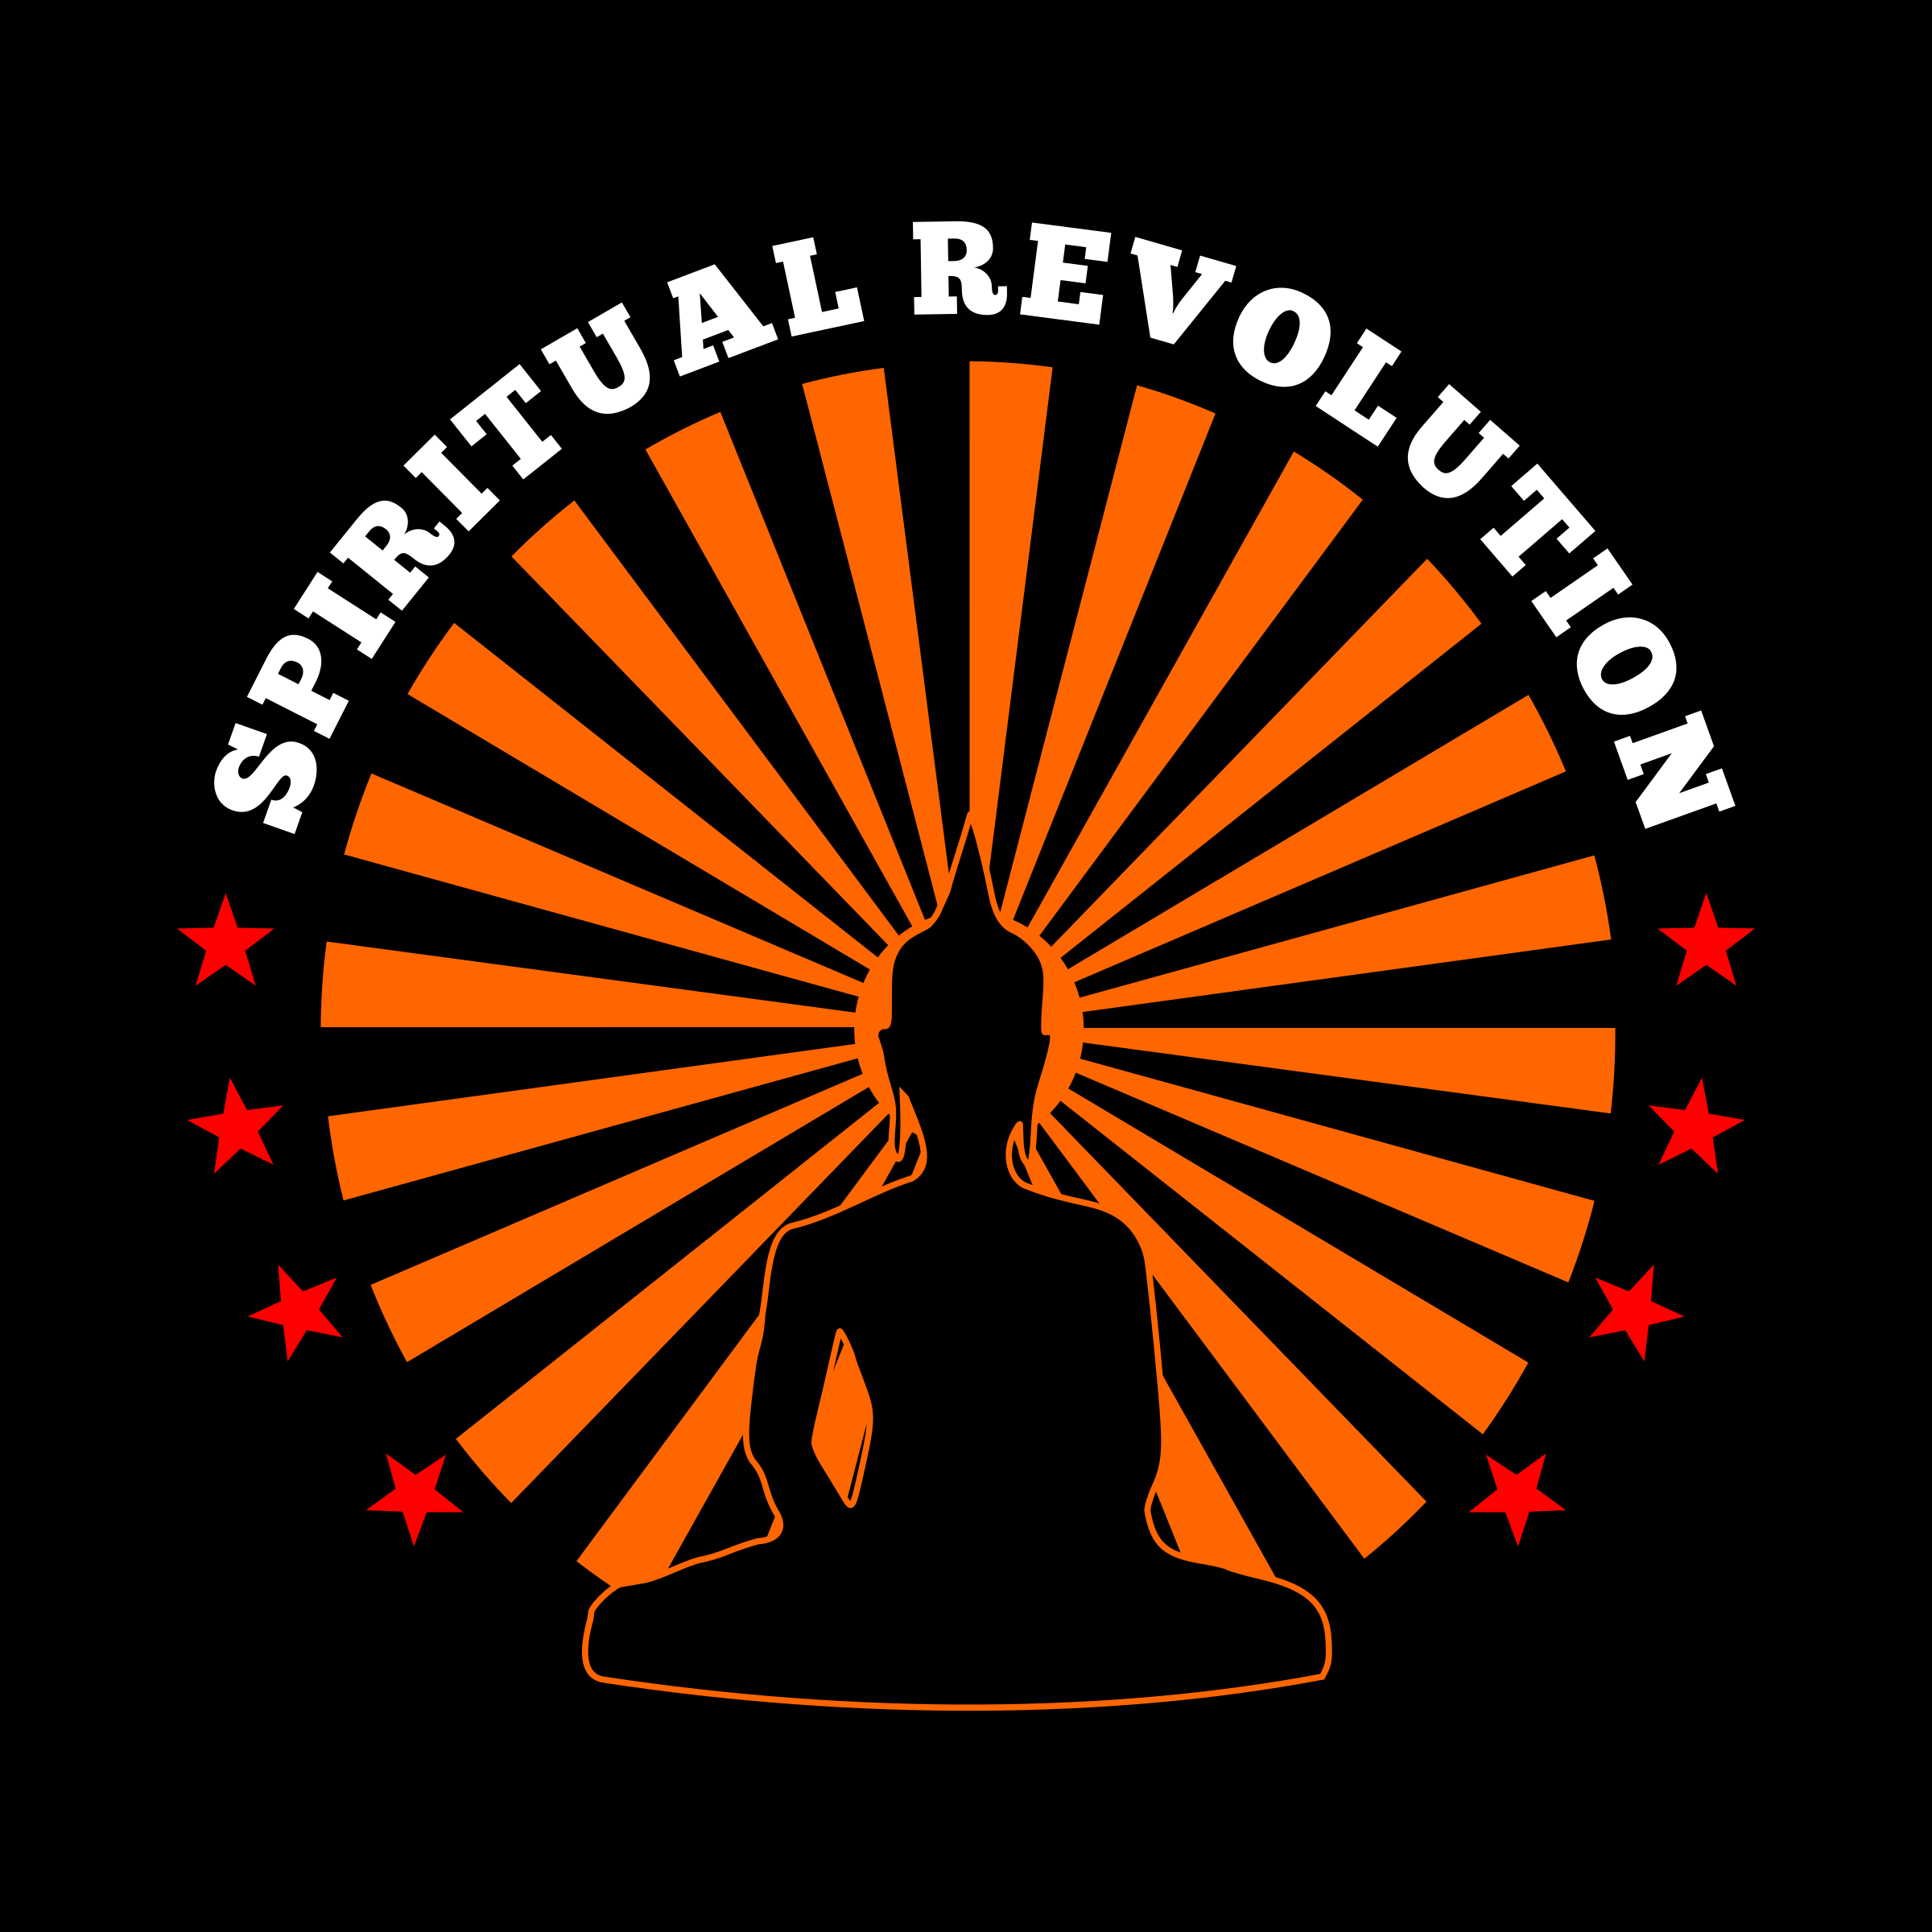 Spiritual Revolution by cliparteles